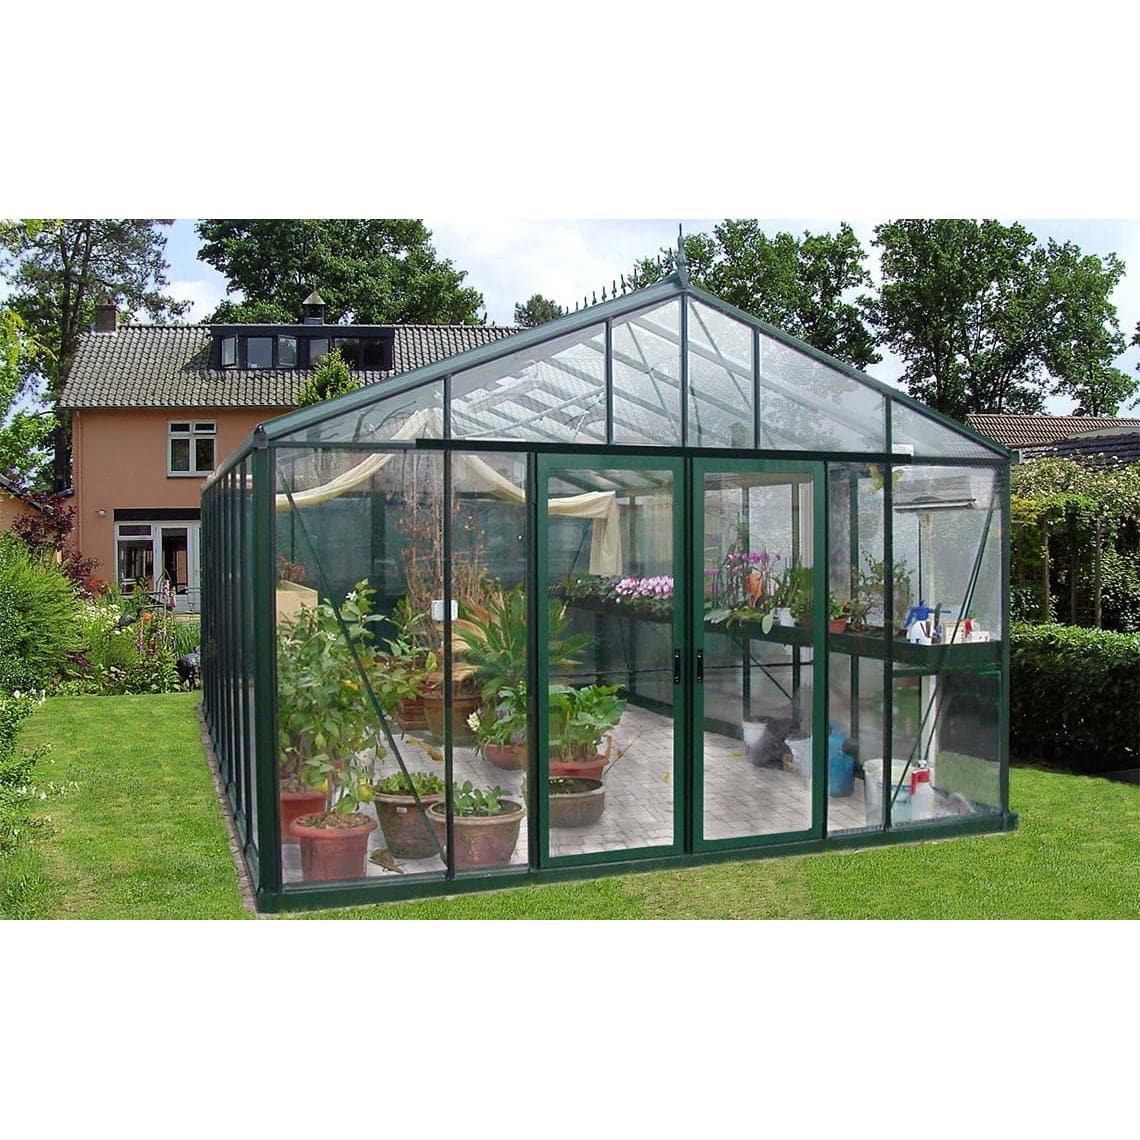 V146 Large Victorian Greenhouse - Aquaponics For Life